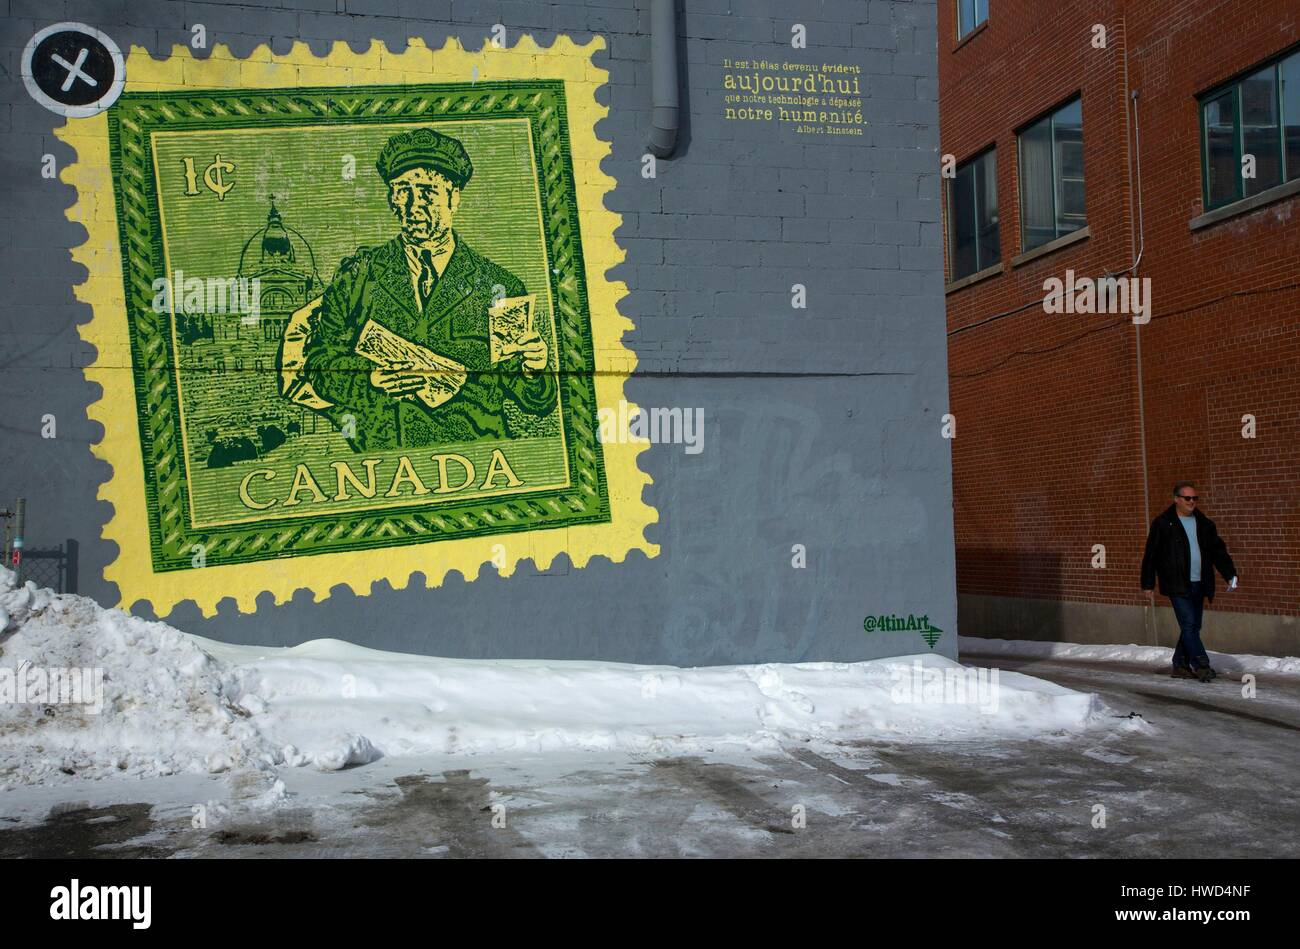 Canada, Quebec province, Montreal, Saint-Laurent boulevard, man passing in front of a mural representing a canadian - Stock Image